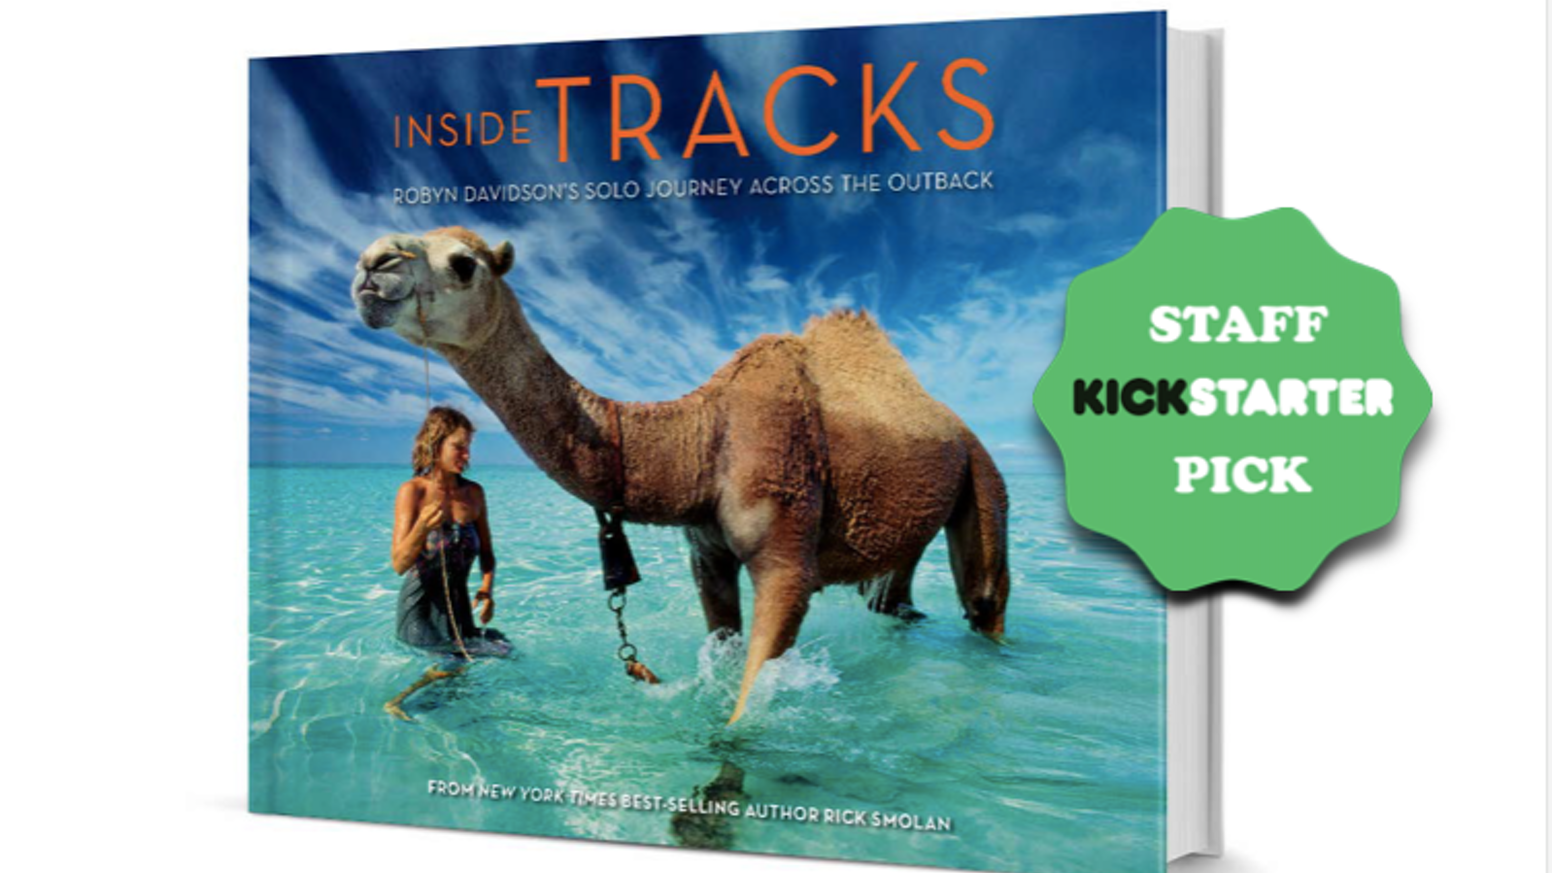 A Stunning Smartphone Enabled Coffee Table Book Based On Robyn Davidsons Legendary 1700 Mile Camel Trek